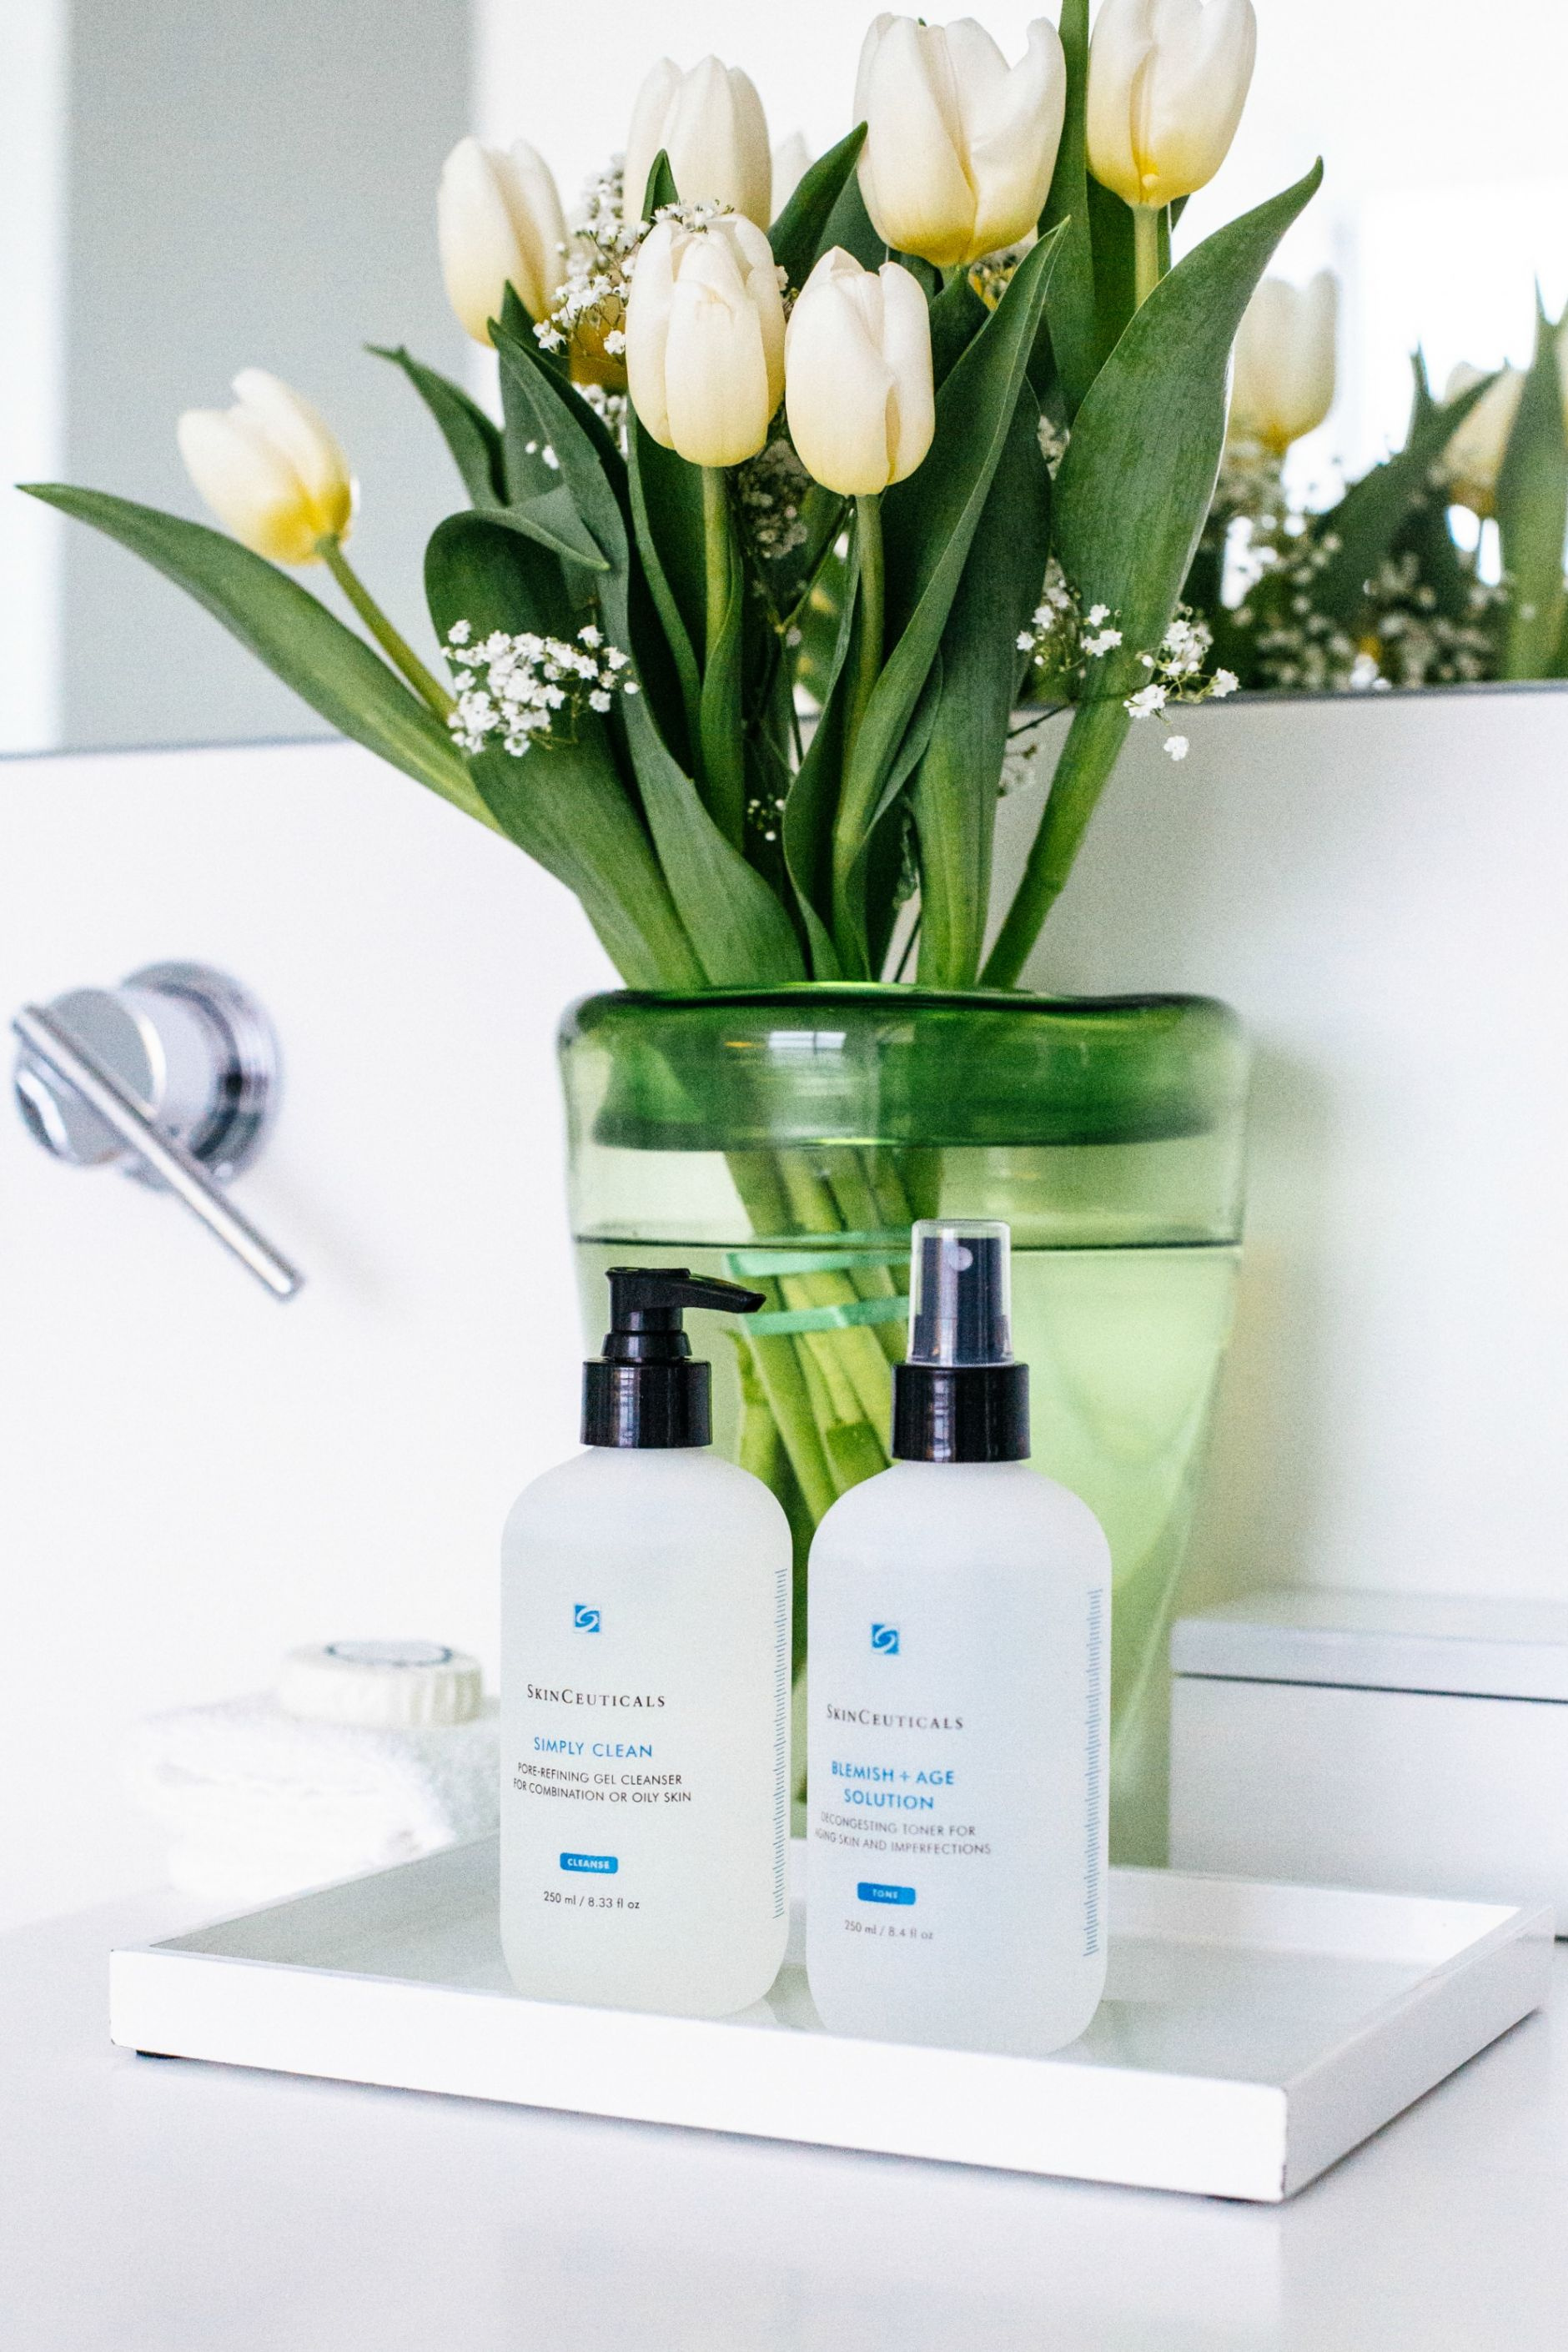 SkinCeuticals-Cleansing-Gel-blemish-age-solution-toner-disi-couture